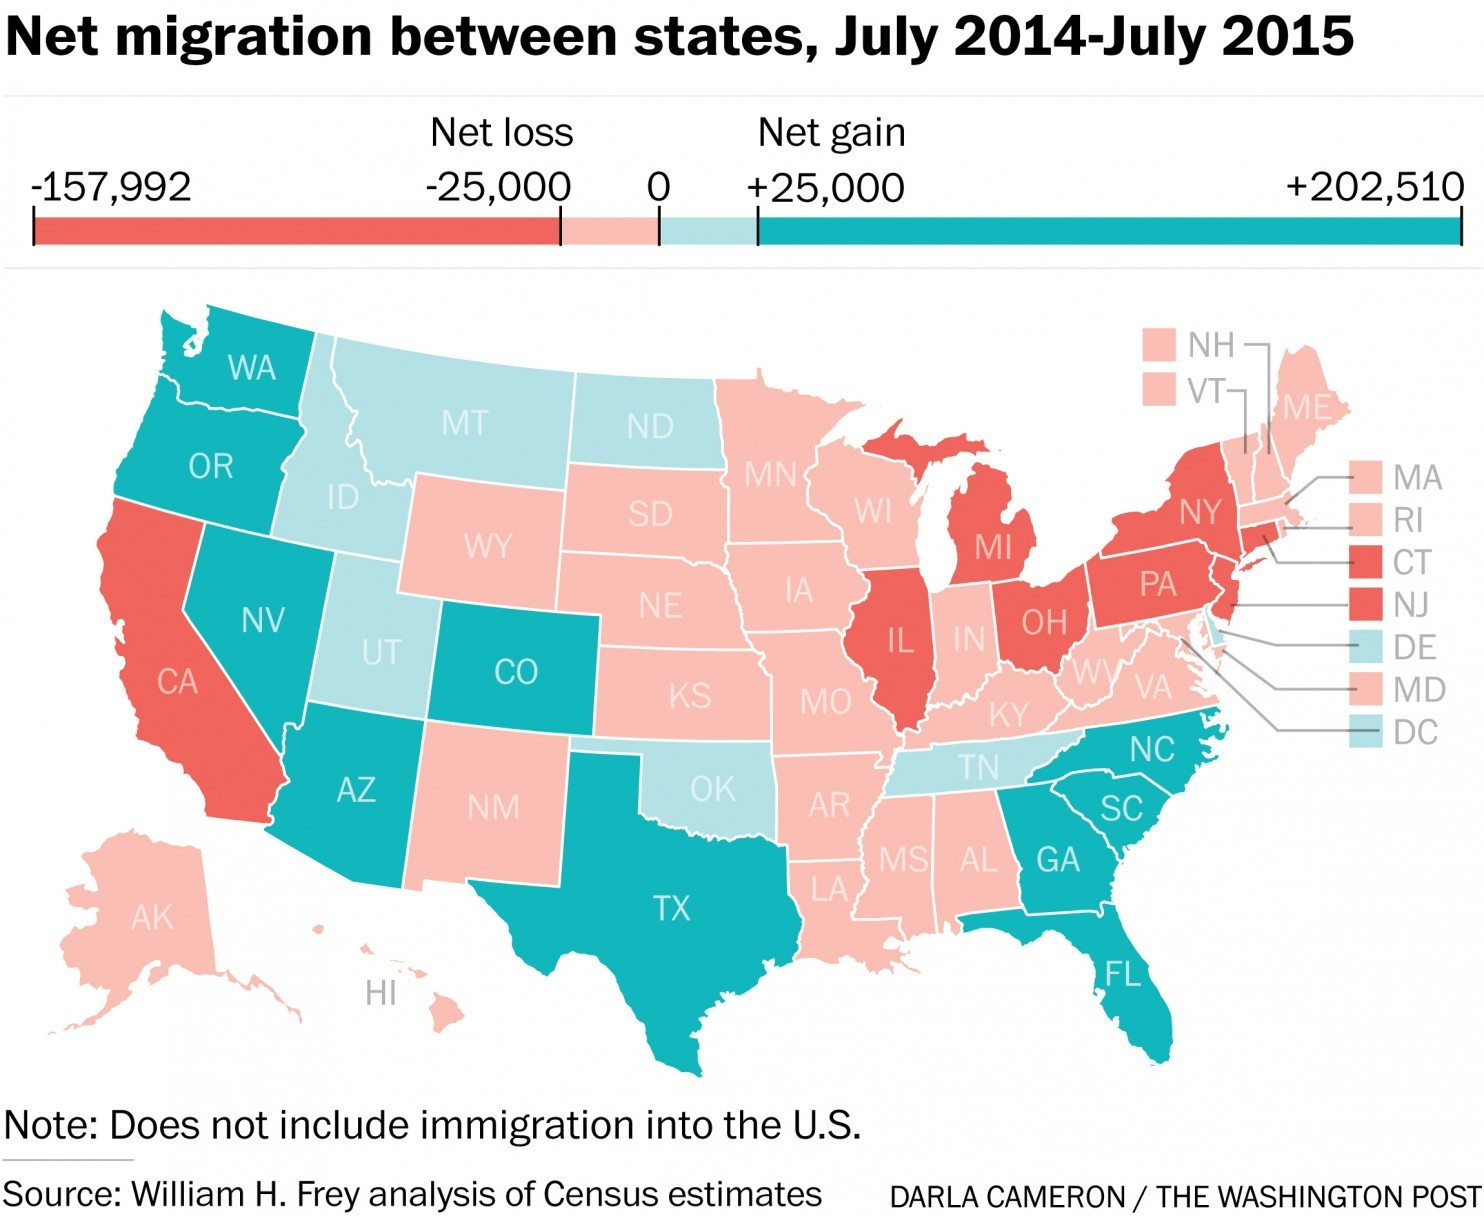 Net migration between states